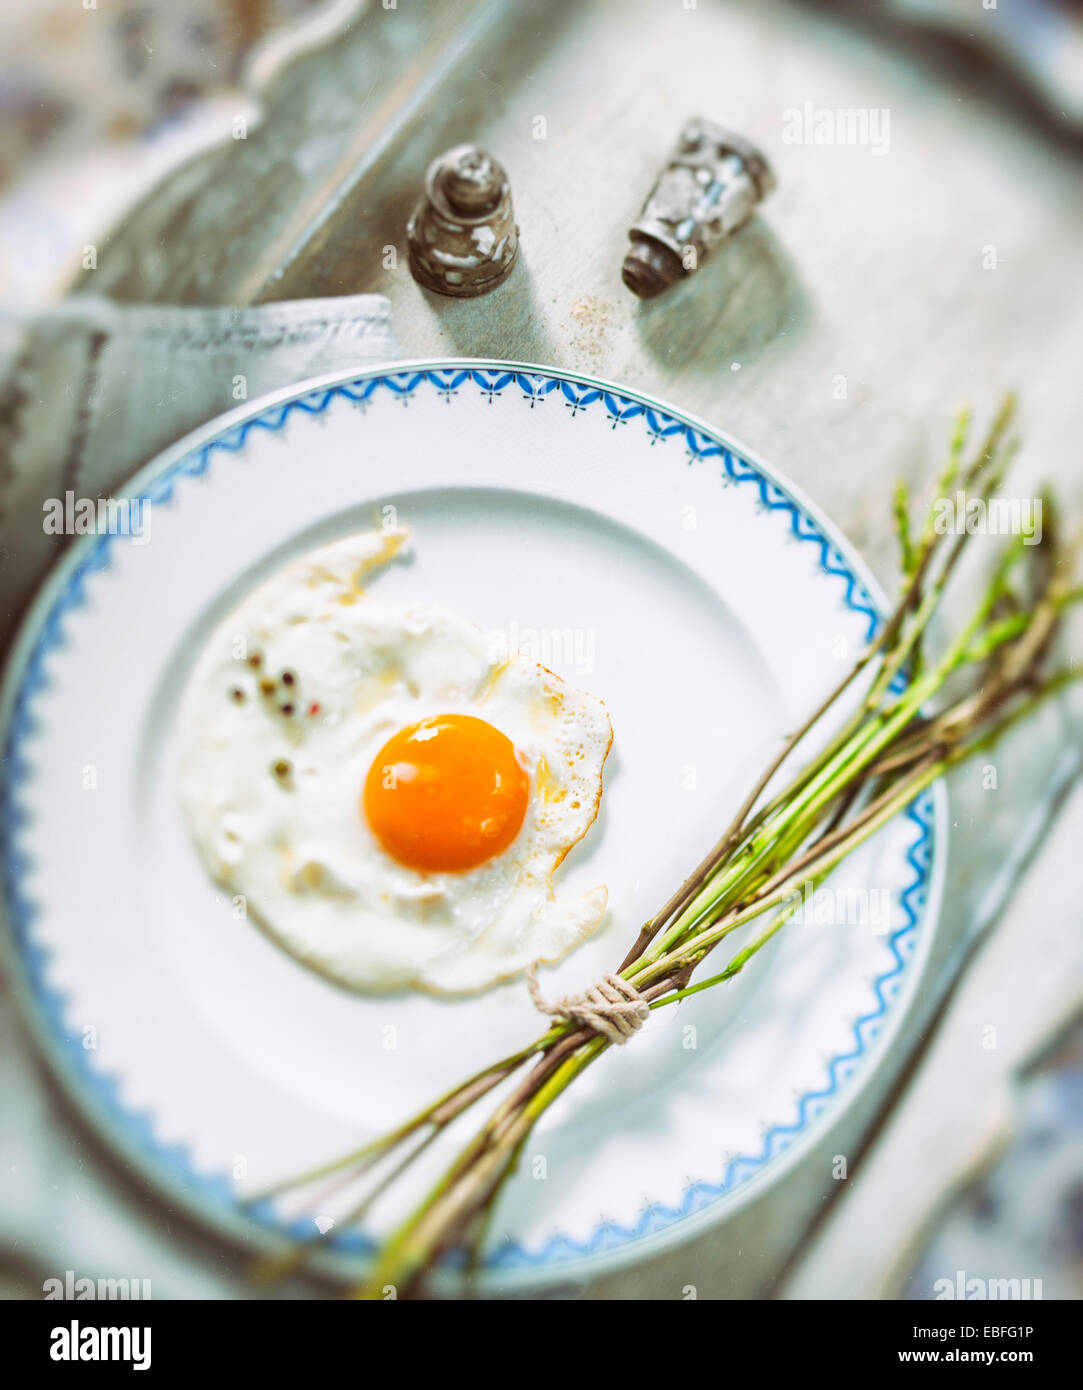 Fried egg and fresh wild asparagus on a white plate Stock Photo